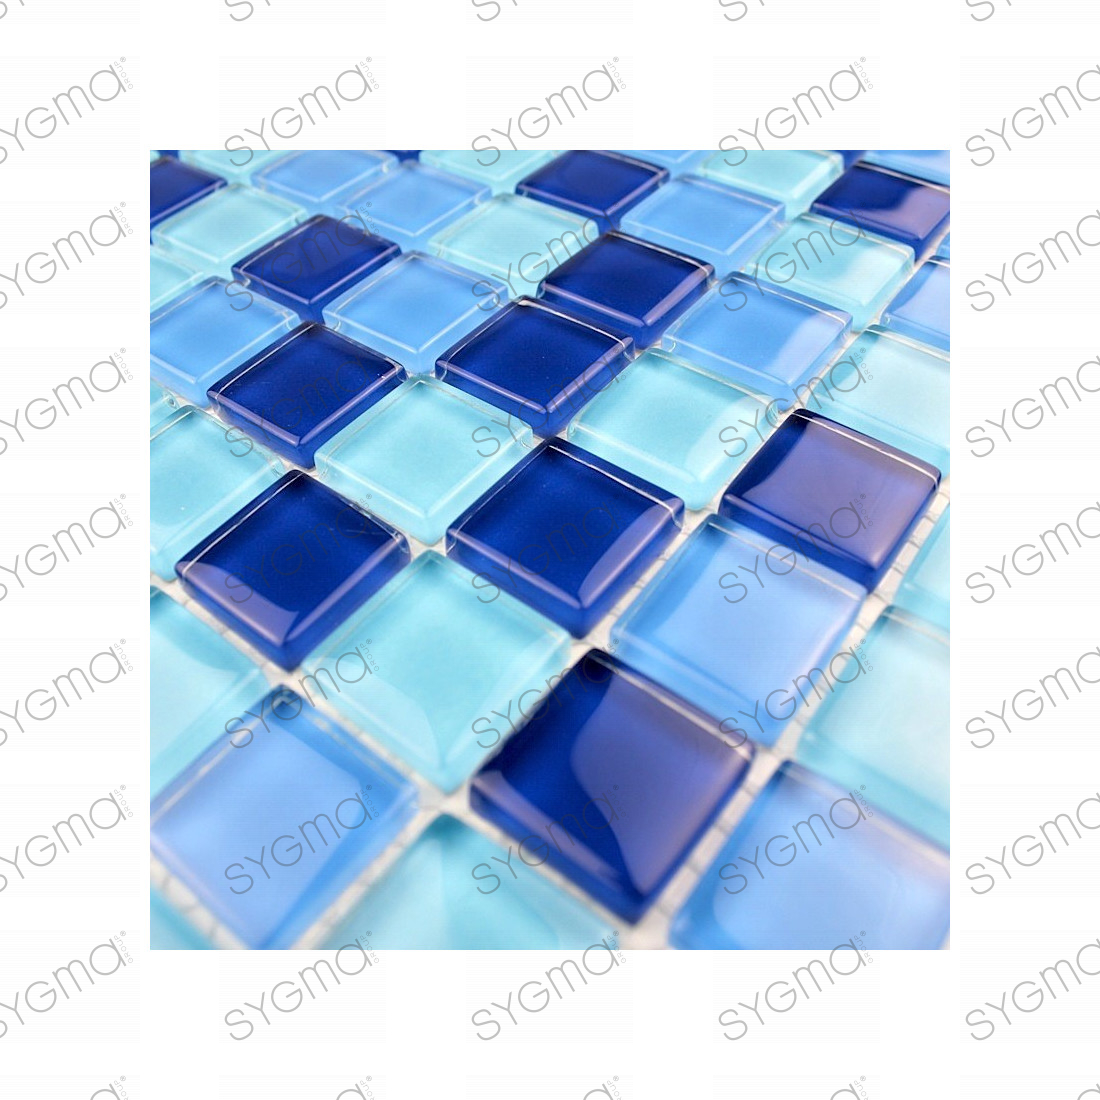 Credence verre salle de bain 20170723092931 for Mosaique credence cuisine